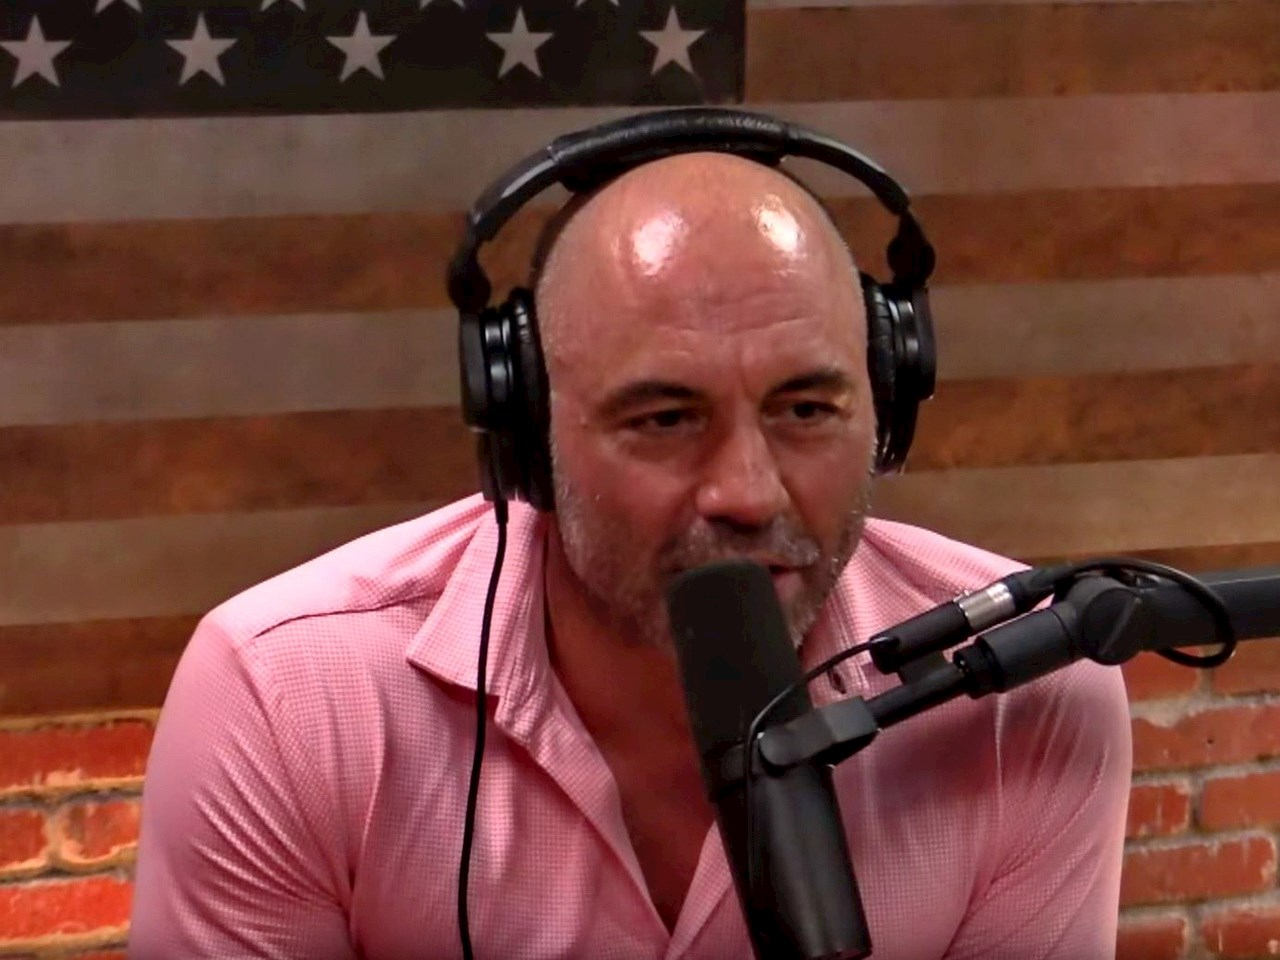 Joe Rogan interviewing Elon Musk